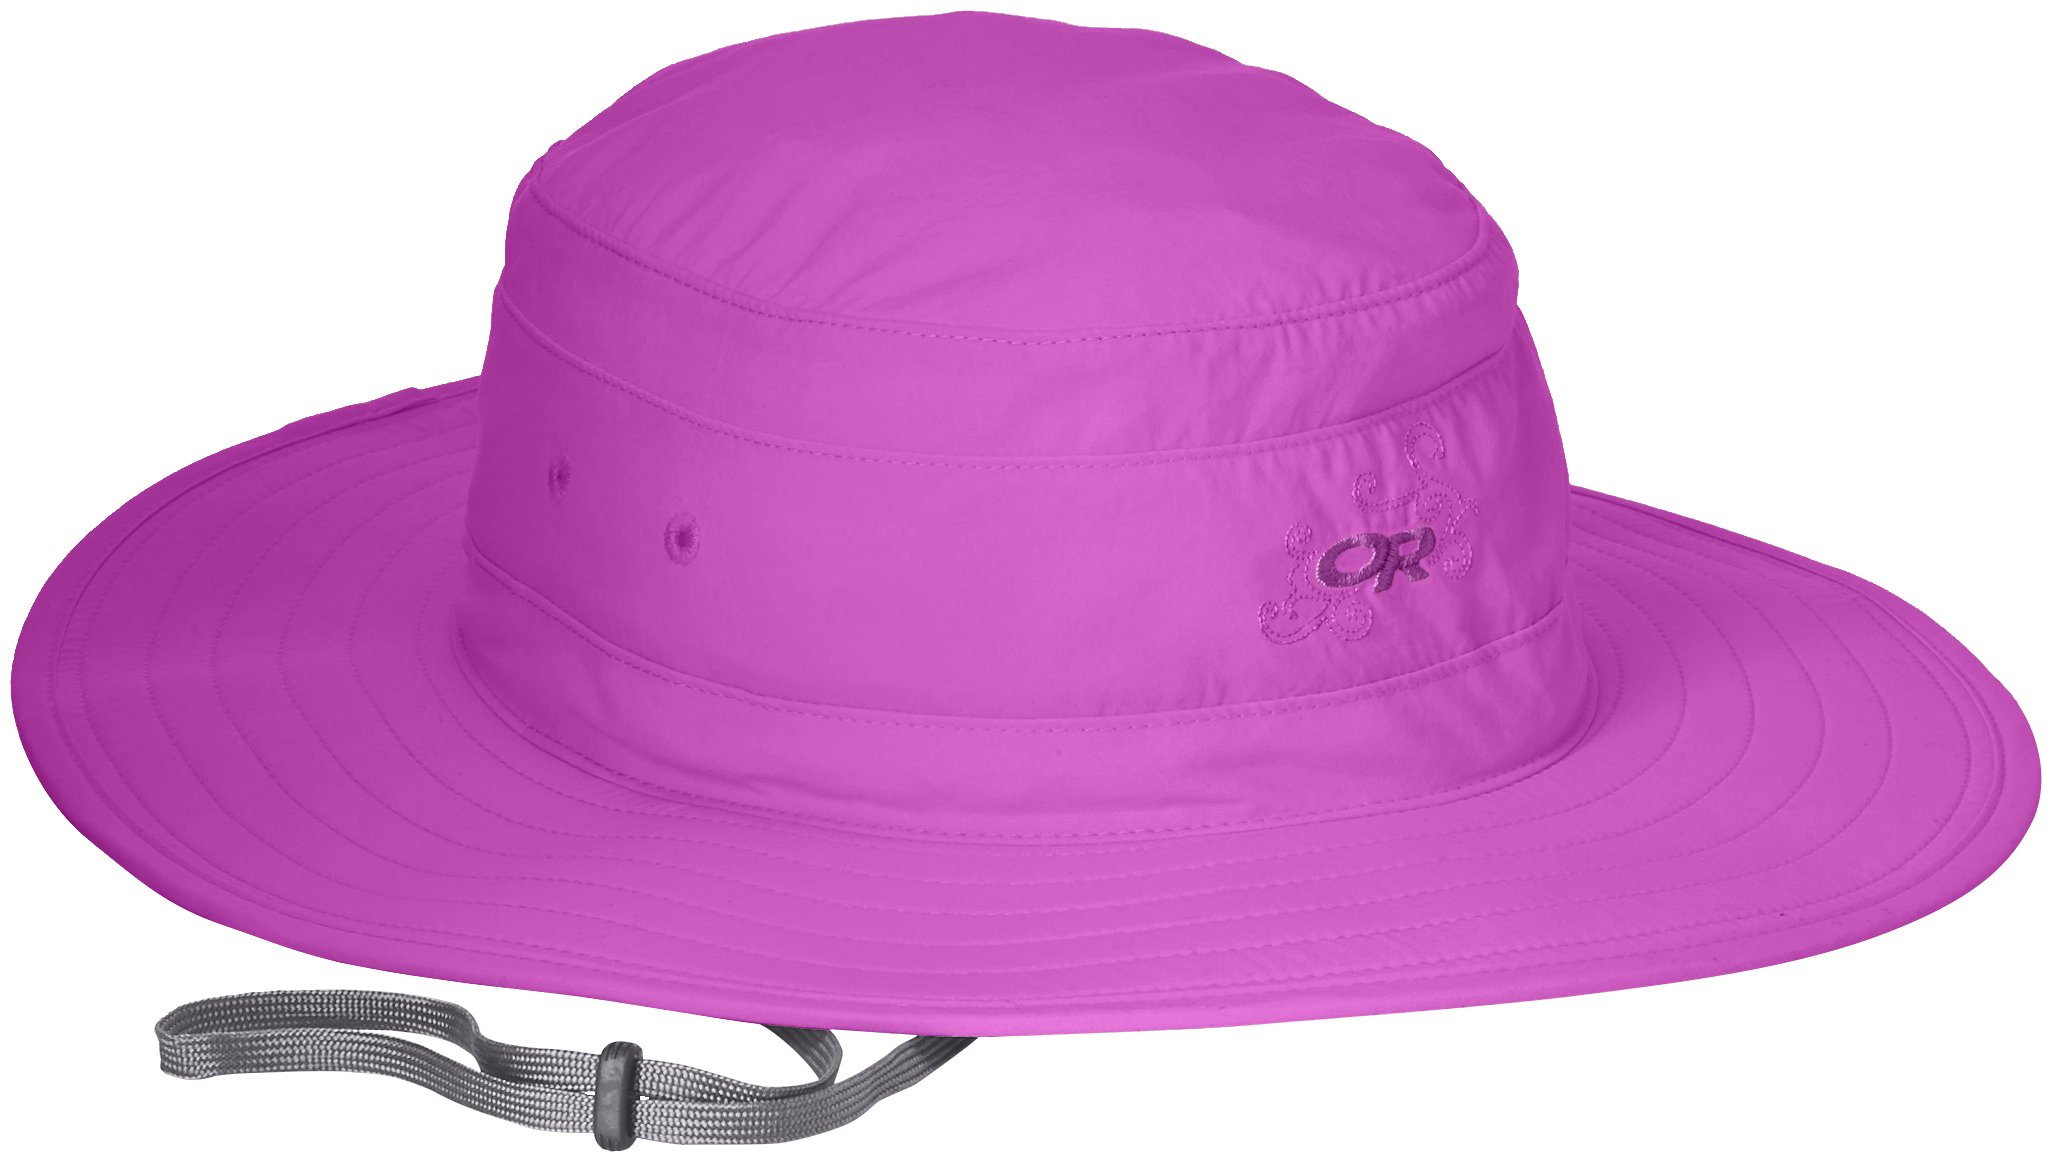 a8bb2856a59f3e Galleon - Outdoor Research Women's Solar Roller Sun Hat, Ultraviolet, Medium